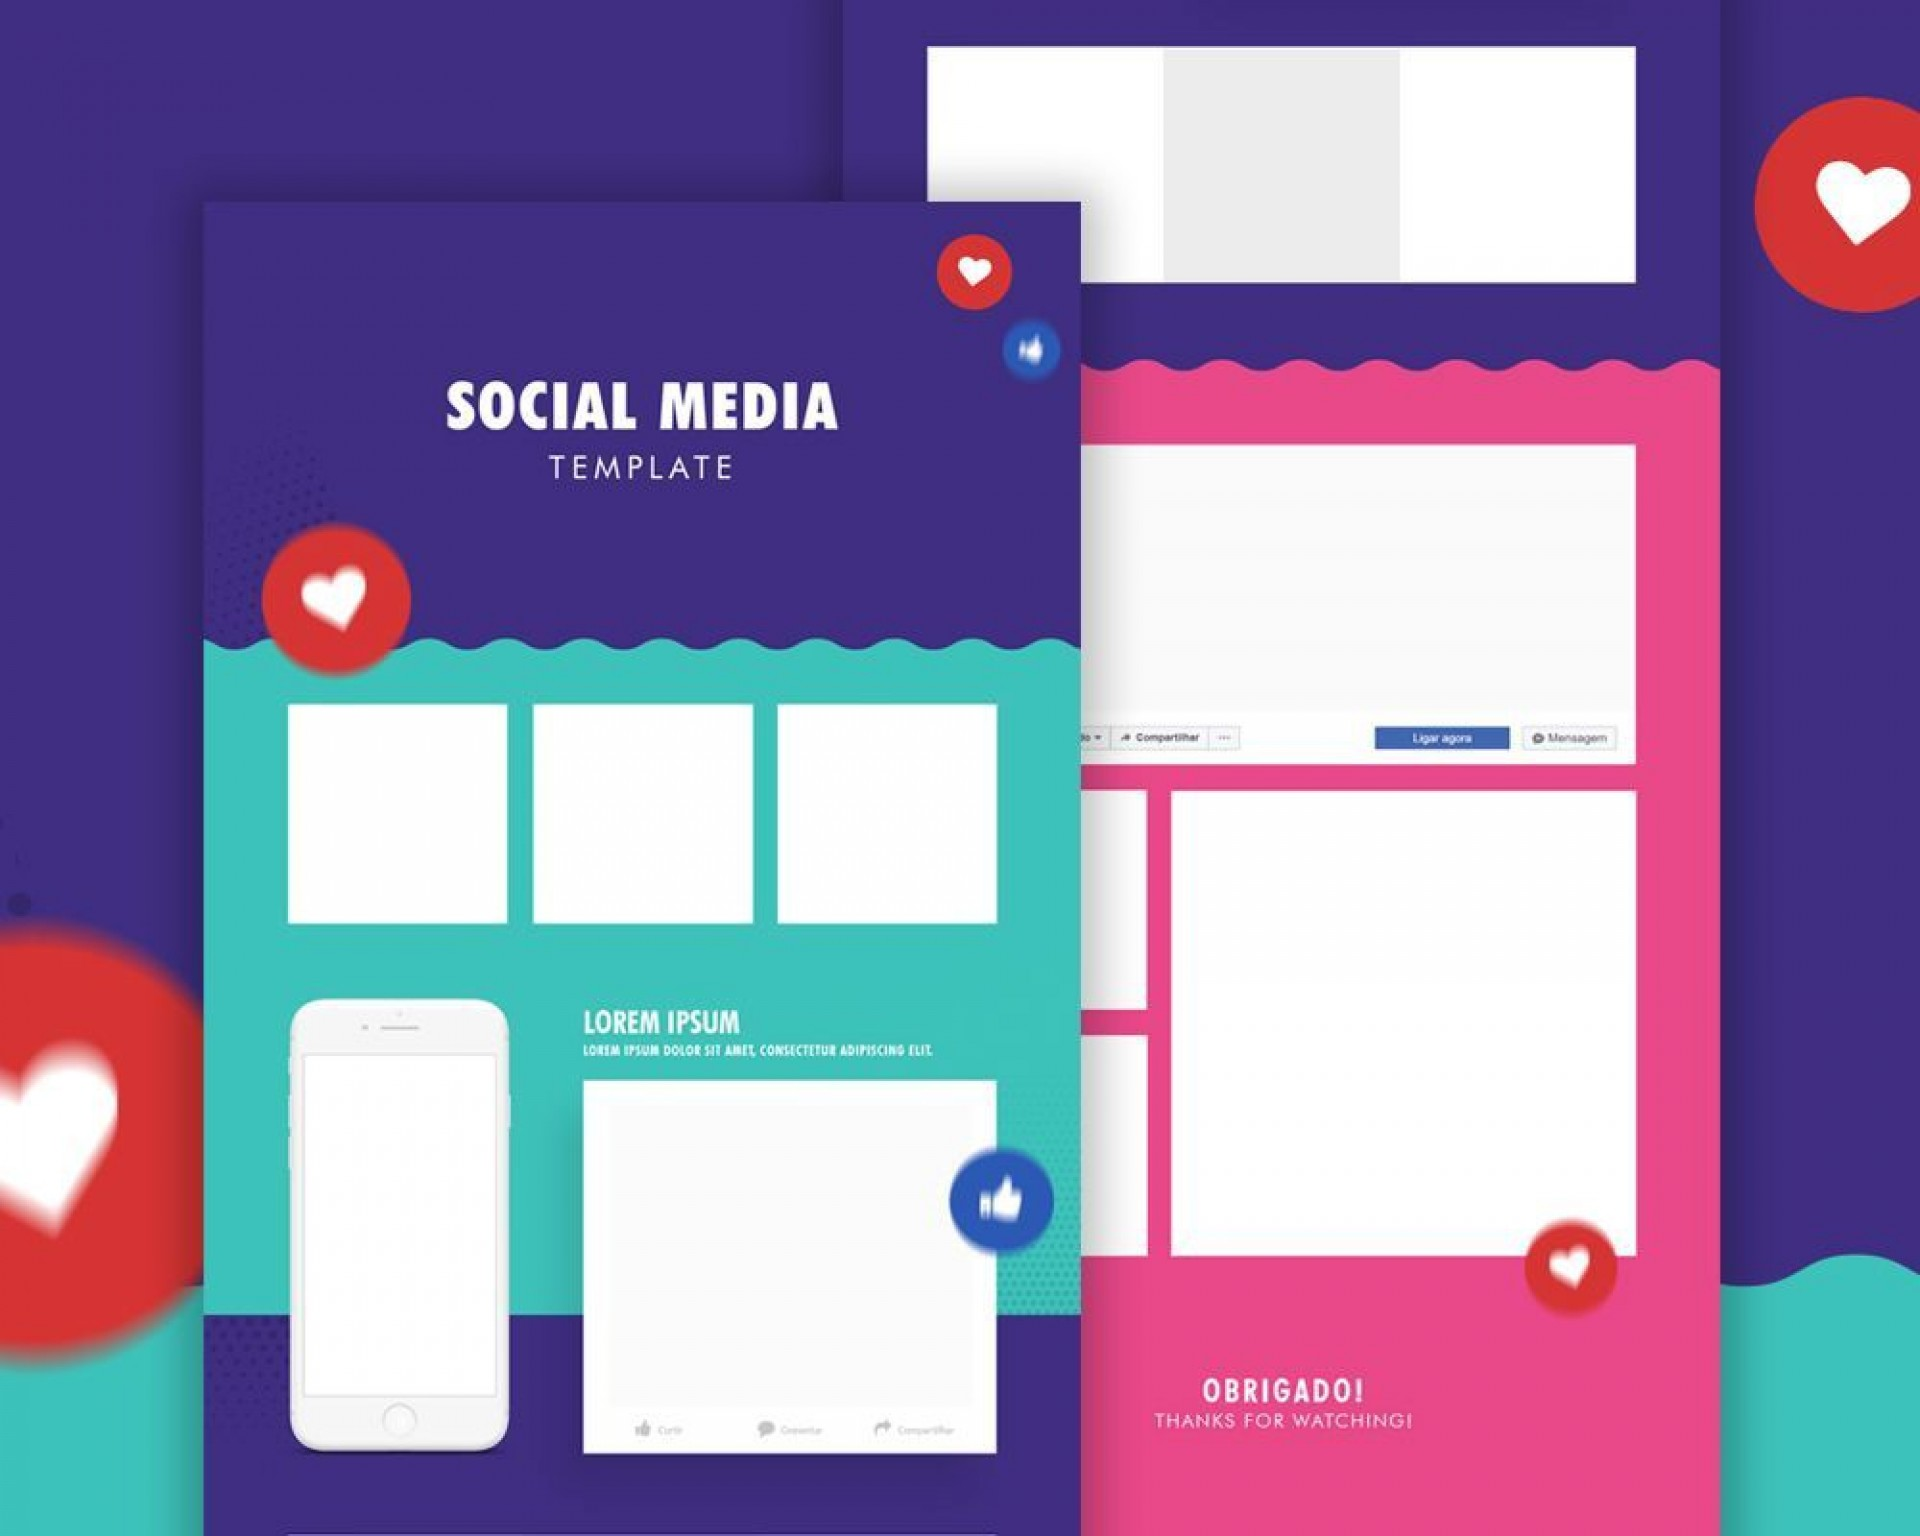 002 Awful Social Media Template Free Psd Highest Clarity  Download1920